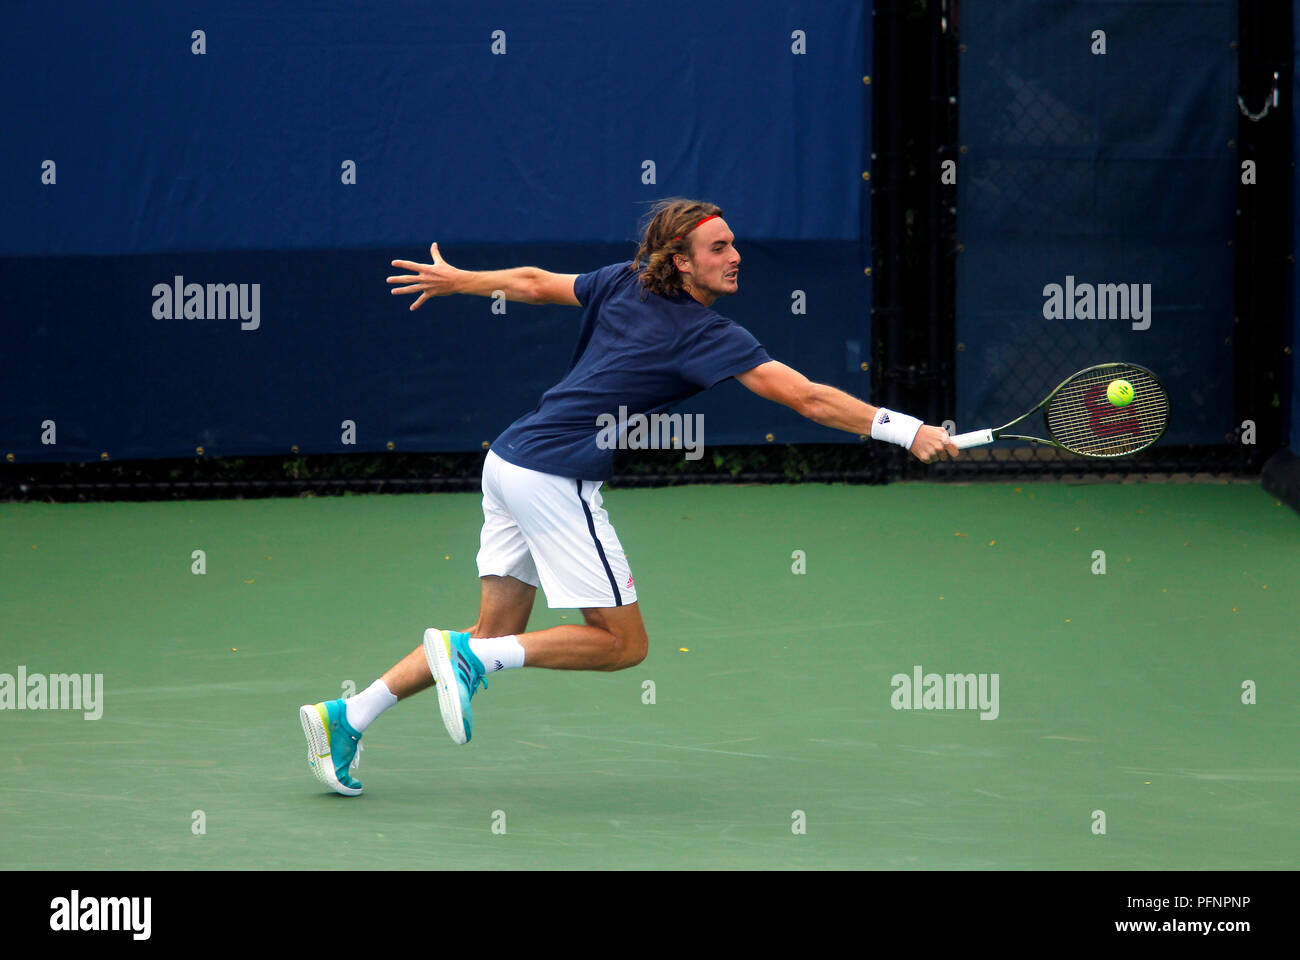 New York N Y August 22 2018 Us Open Tennis Practice Stefanos Tsitsipas Of Greece Practicing At The Billie Jean King National Tennis Center In Flushing Meadows New York As Players Prepared